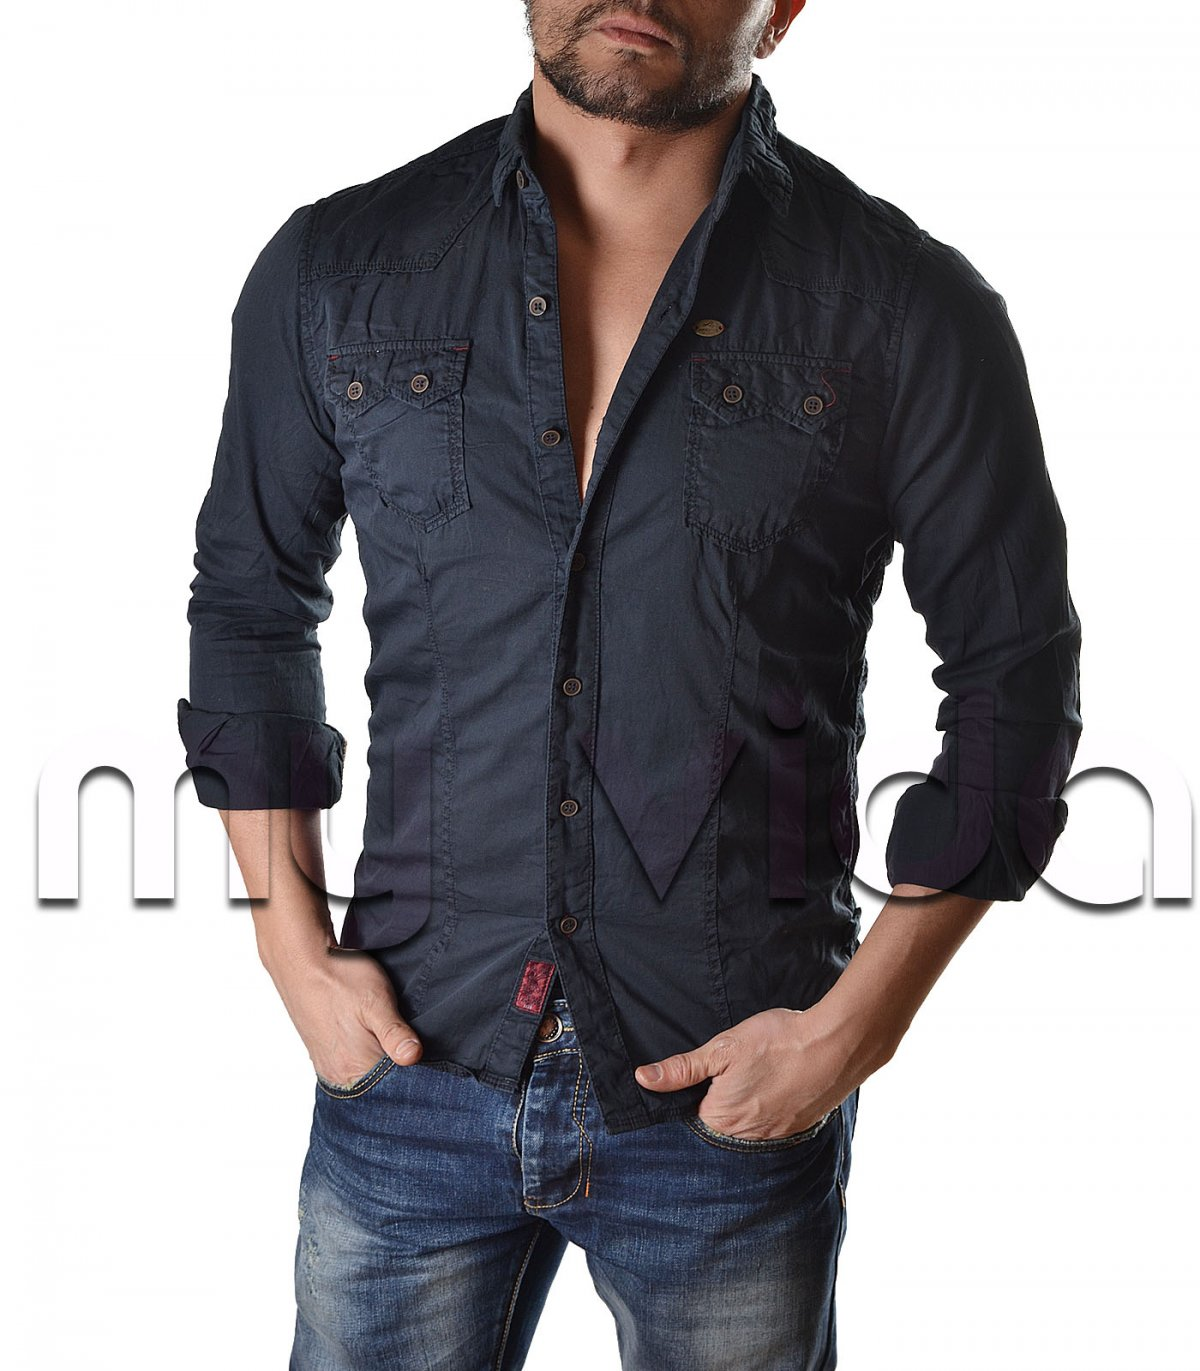 cheap for discount b6b4c 45a83 Camicia uomo casual | My Vida